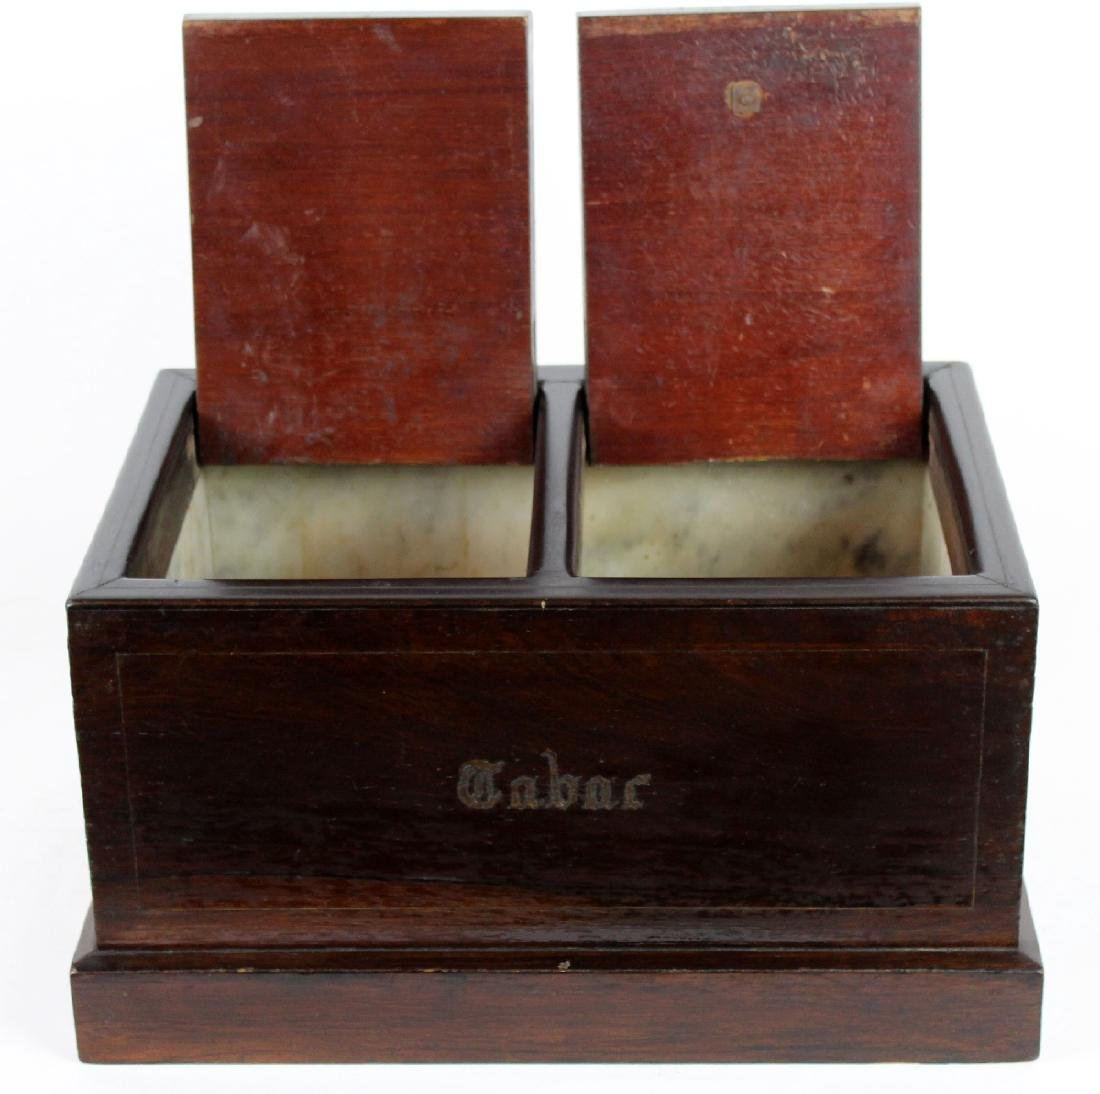 French Tobacco box in rosewood - 2